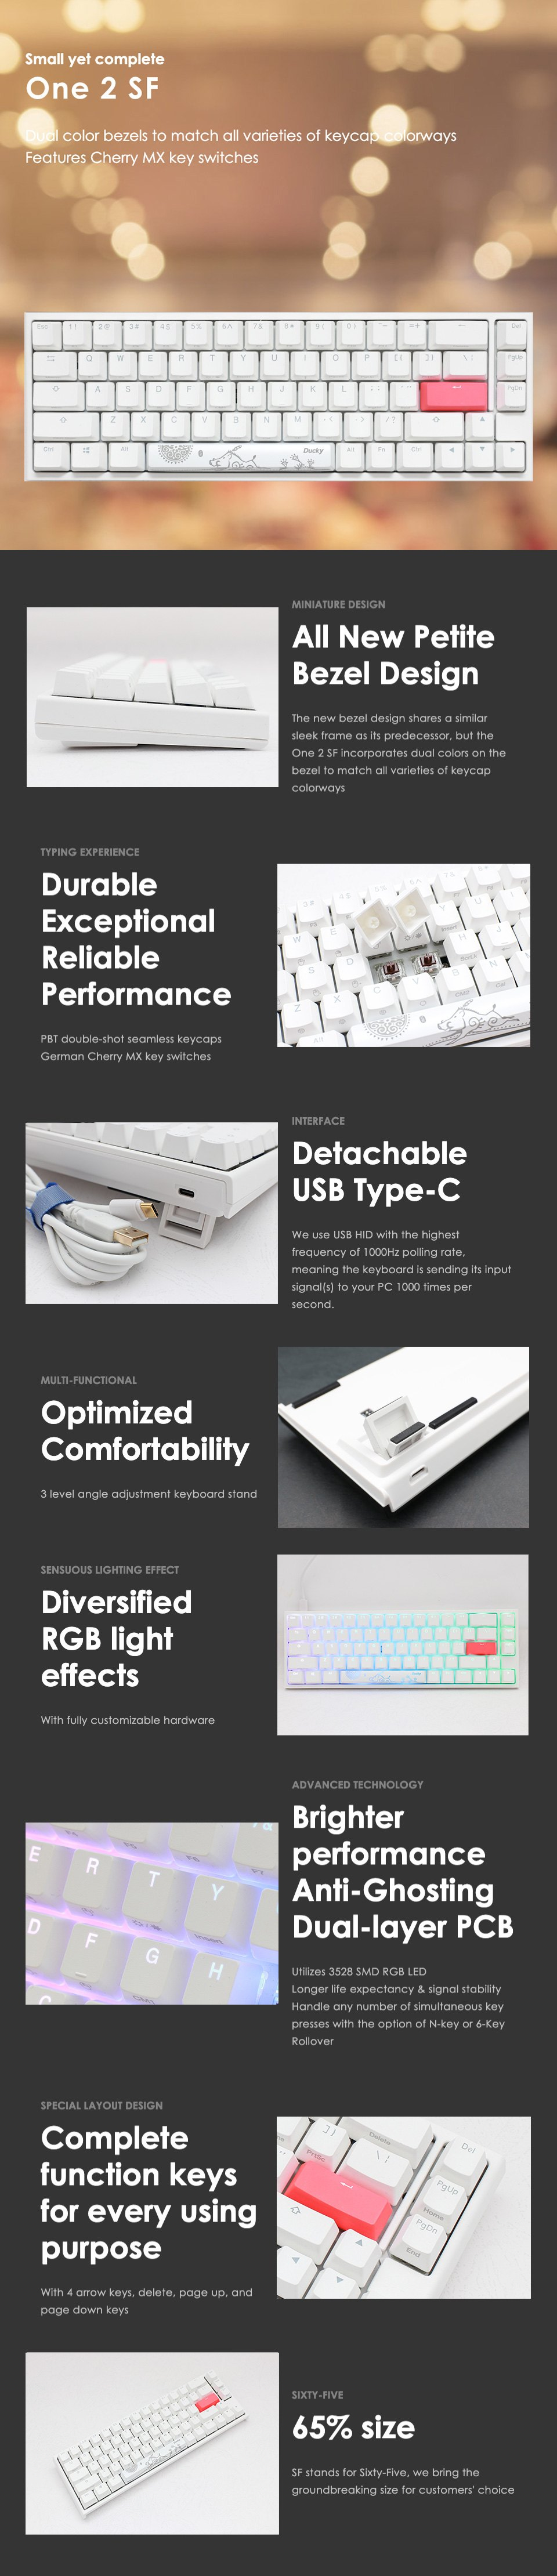 Ducky One 2 SF White RGB Mechanical Keyboard features